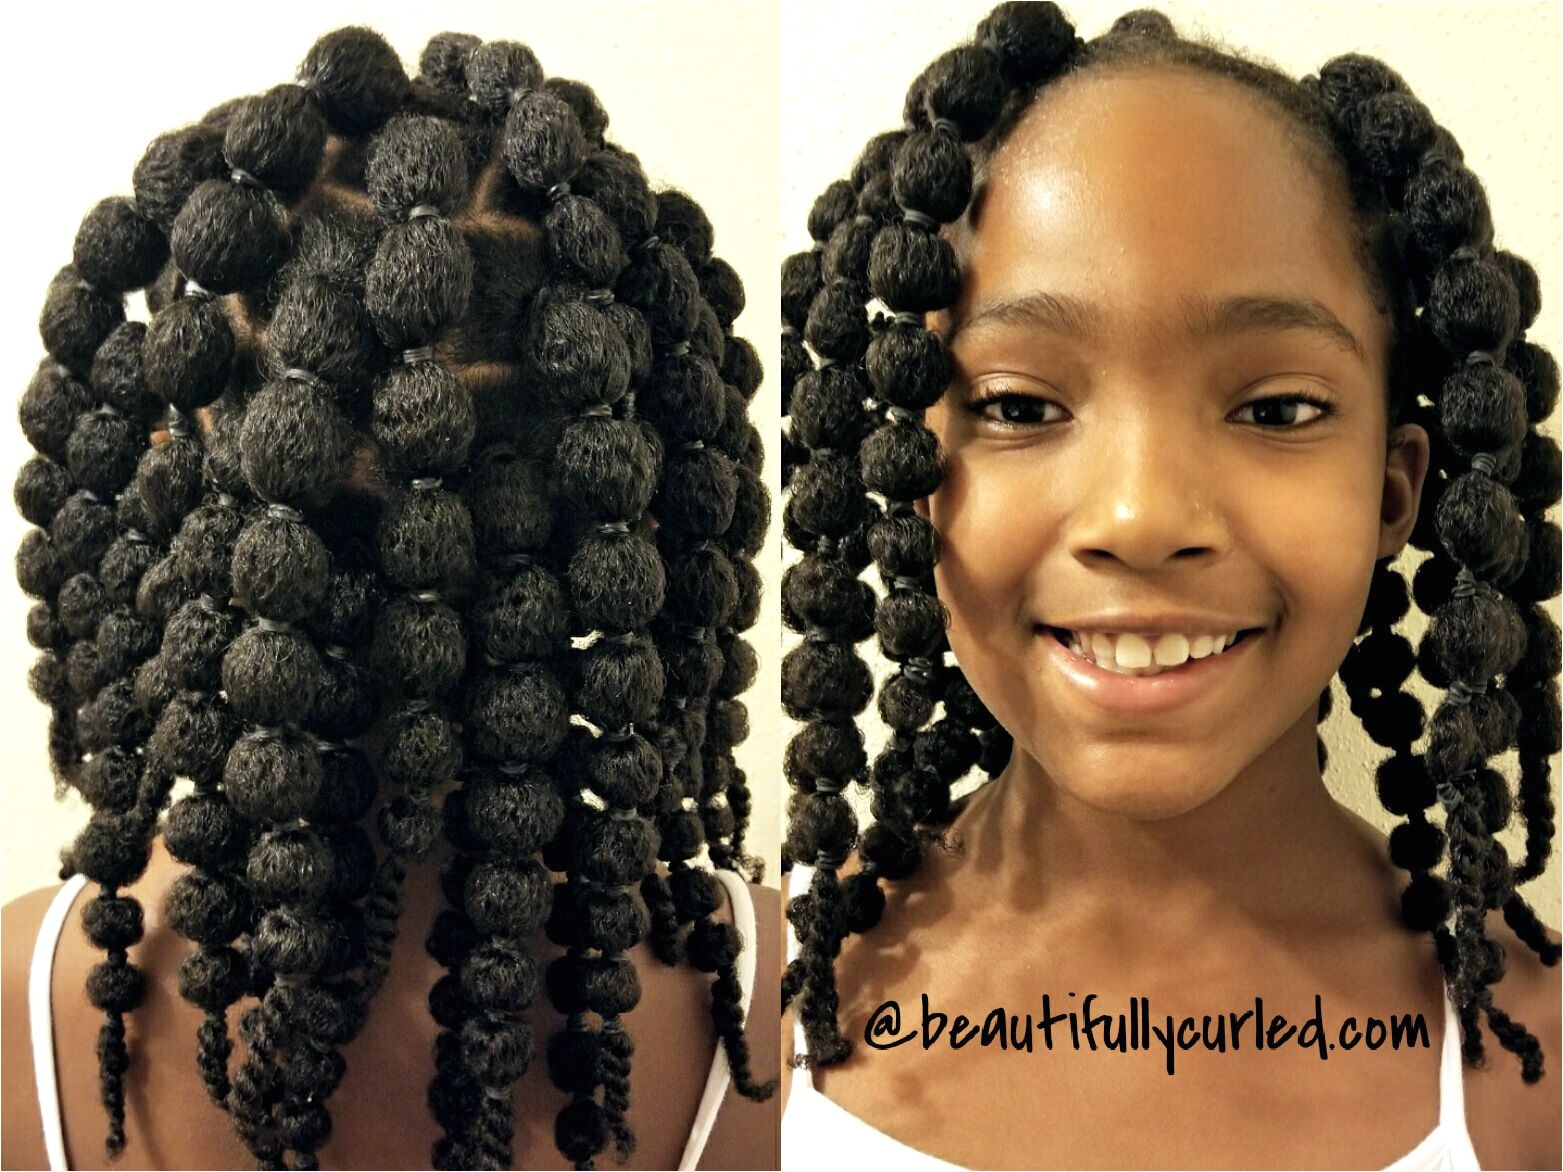 Simple Puff Hairstyles for Girls Cute and Easy Hair Puff Balls Hairstyle for Little Girls to